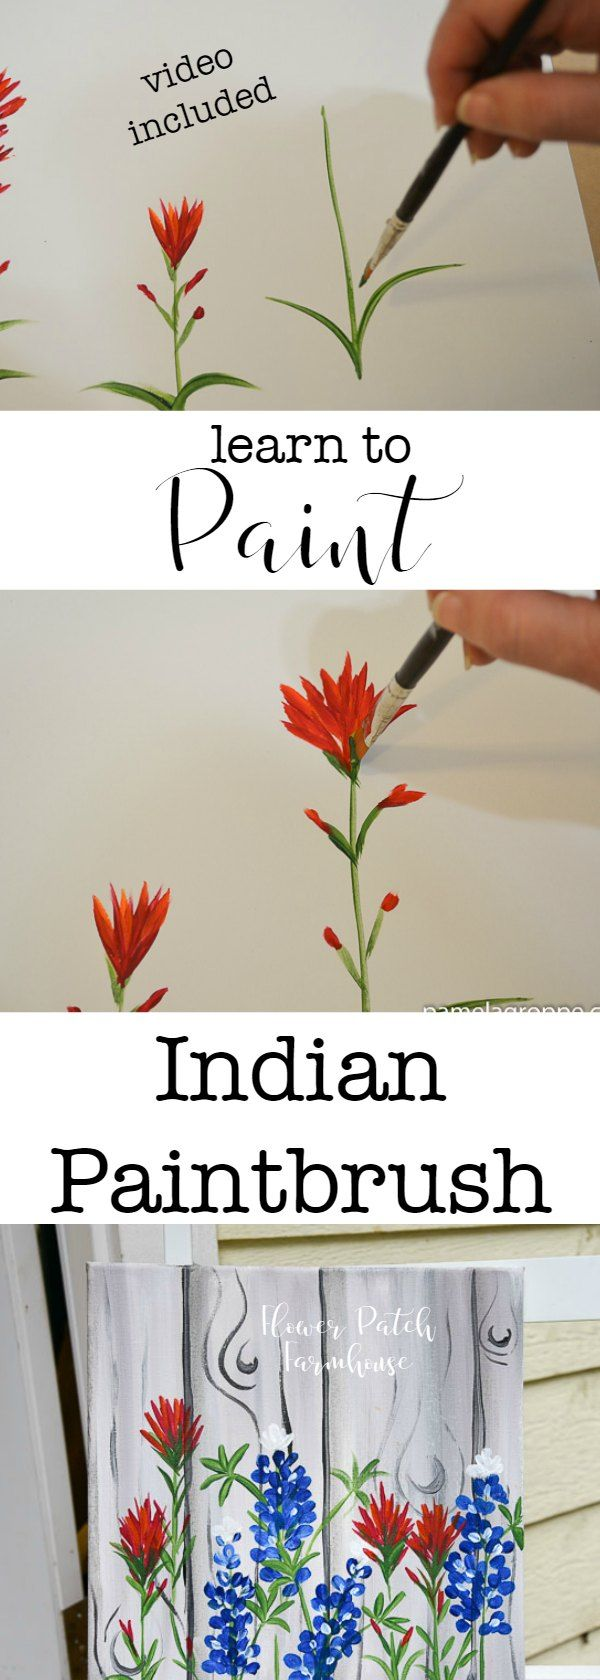 How to Paint Indian Paintbrush one stroke at a time. Easy beginner painting lesson in acrylics. Add this to the Texas Bluebonnet tutorial for a wildflower landscape painting.  via @FlowerpatchPam